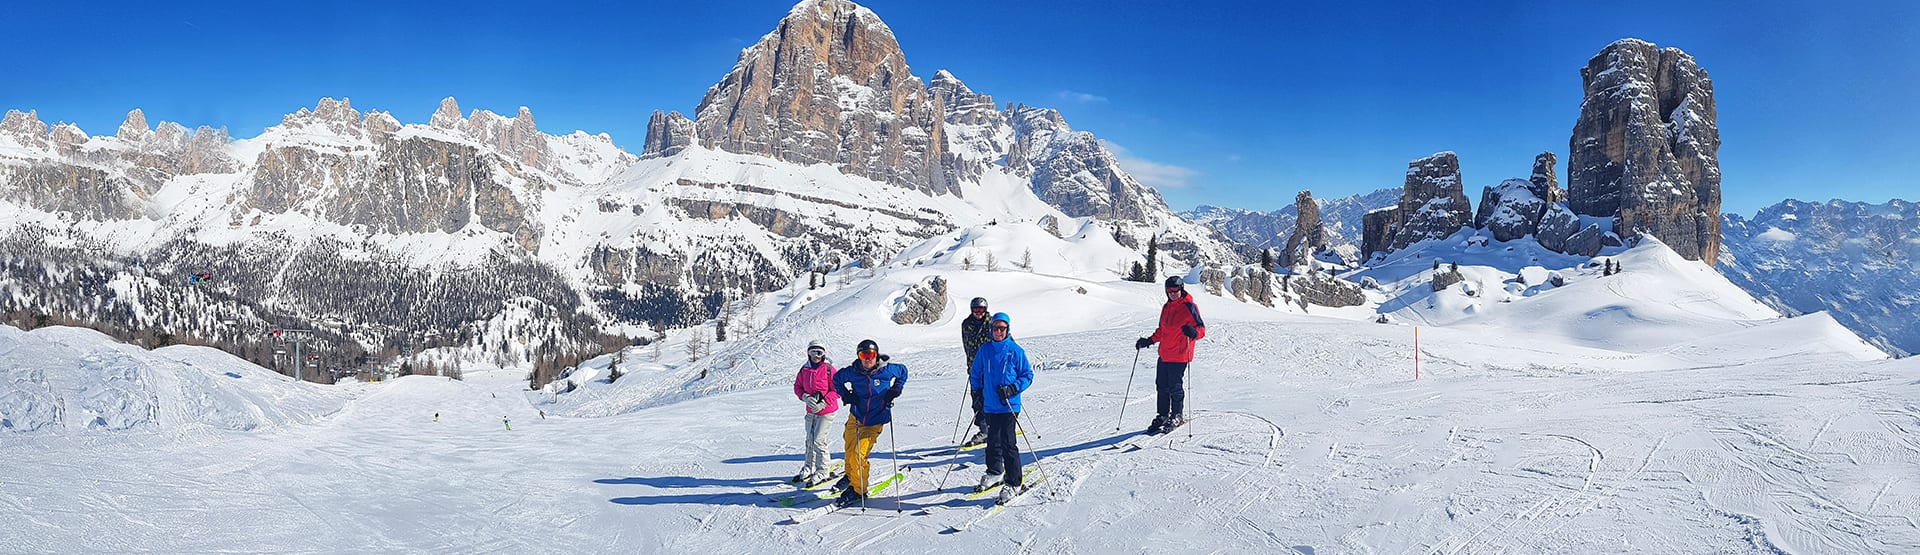 Skiing Holidays in the Dolomites